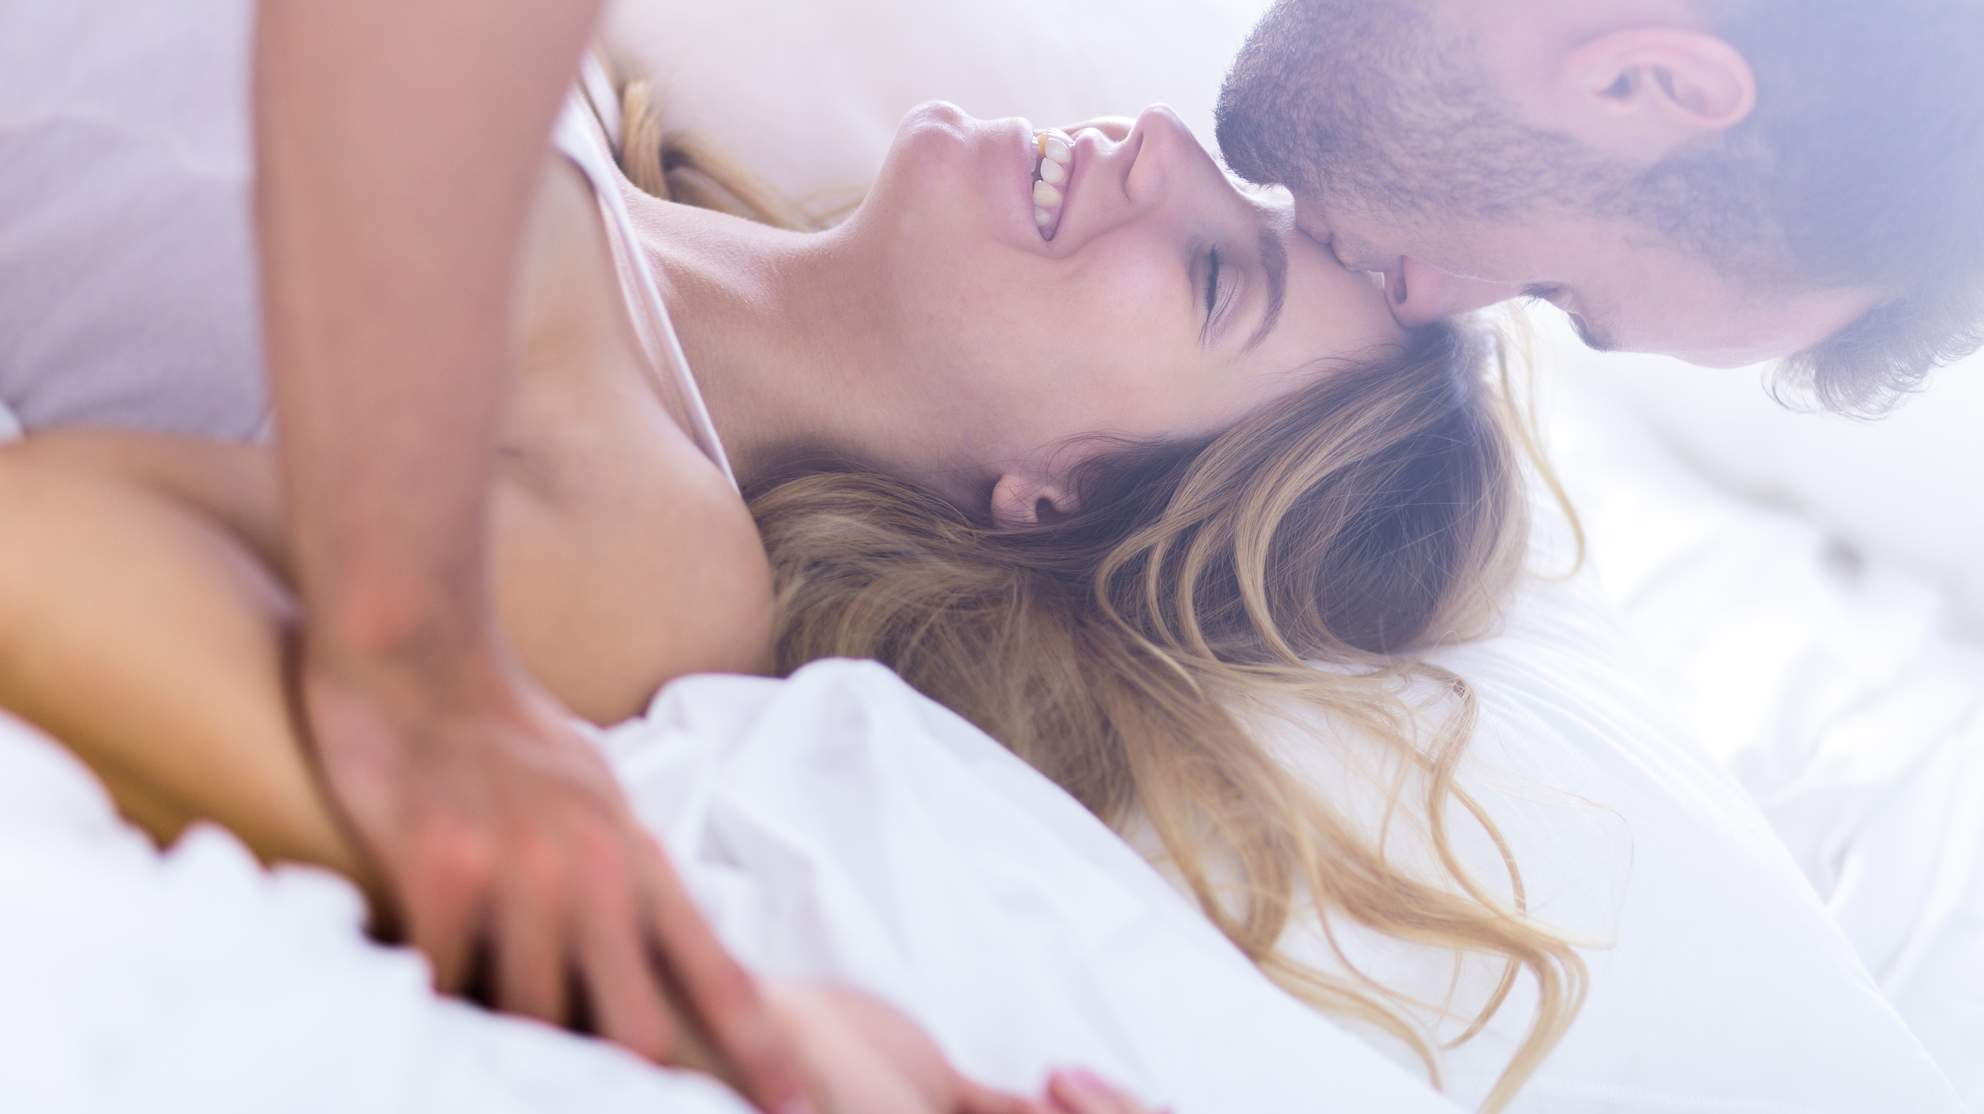 9 Sex Resolutions Every Woman Should Make for the New Year